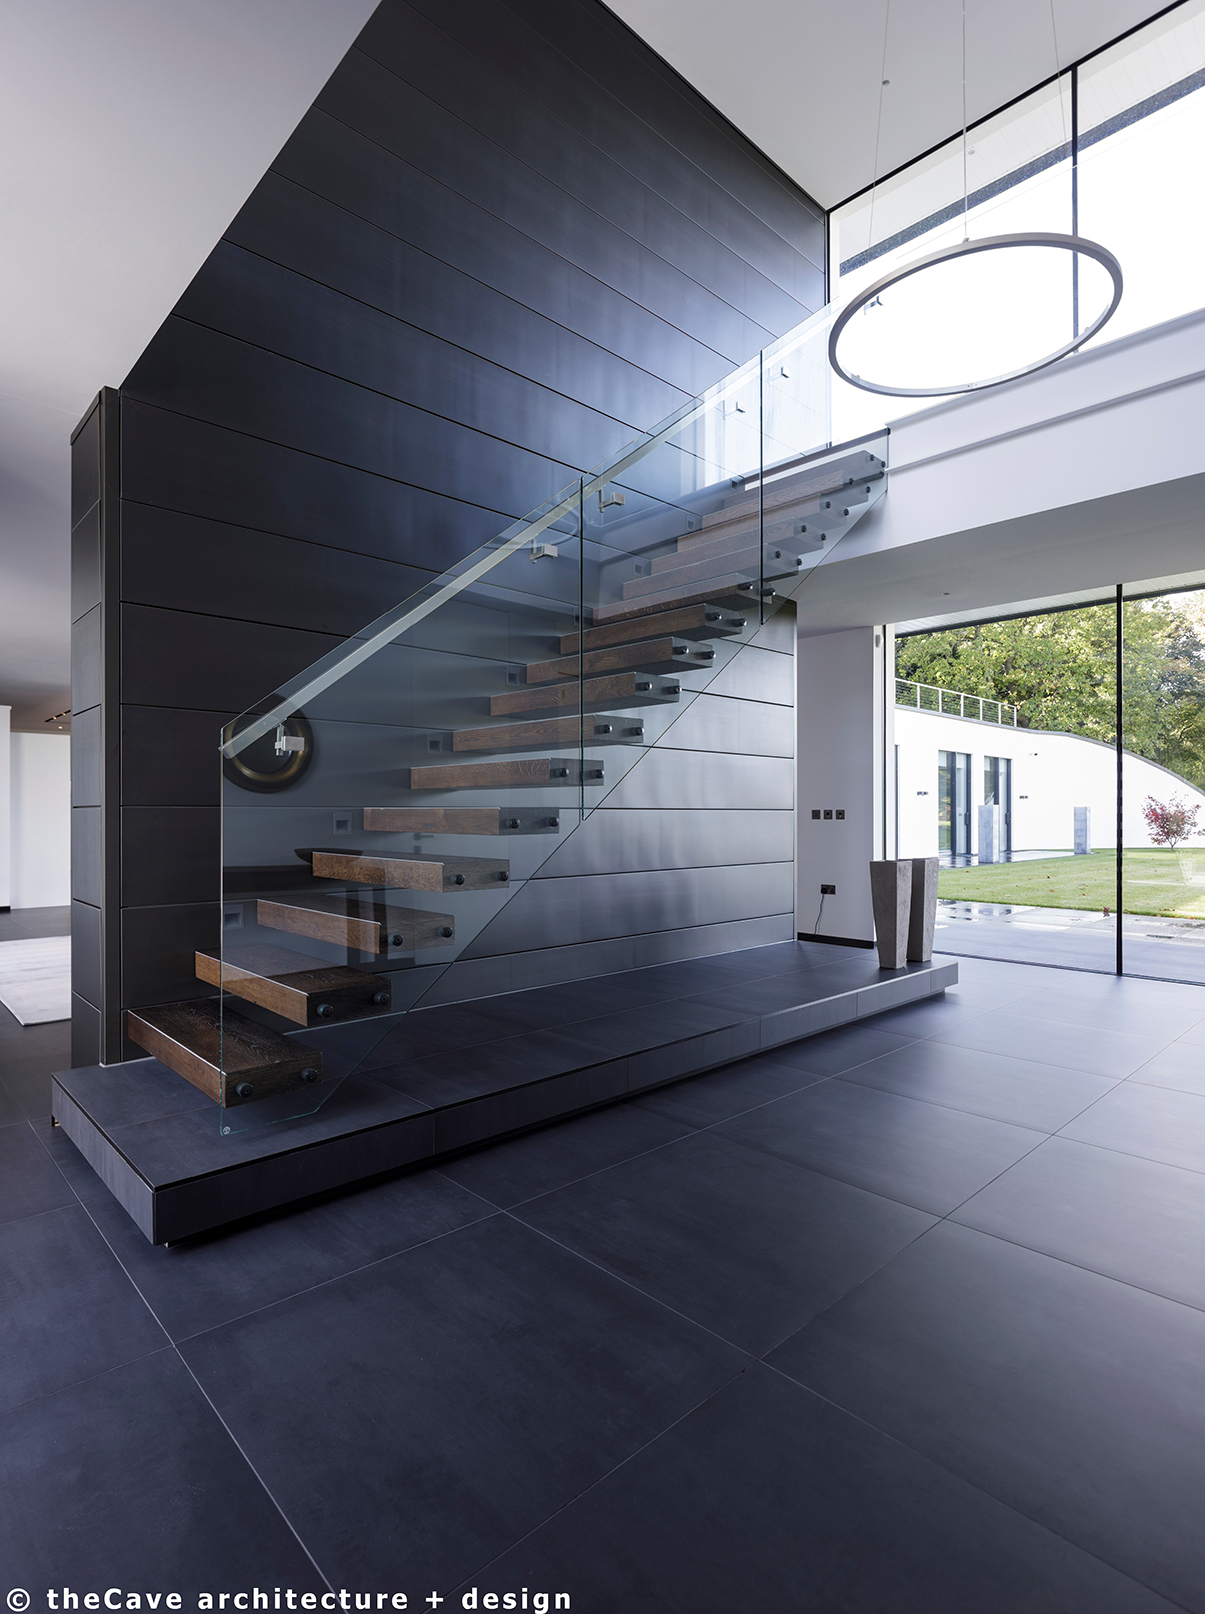 Sevendials-formerly-countryside-bespoke-cantilever-staircase-design